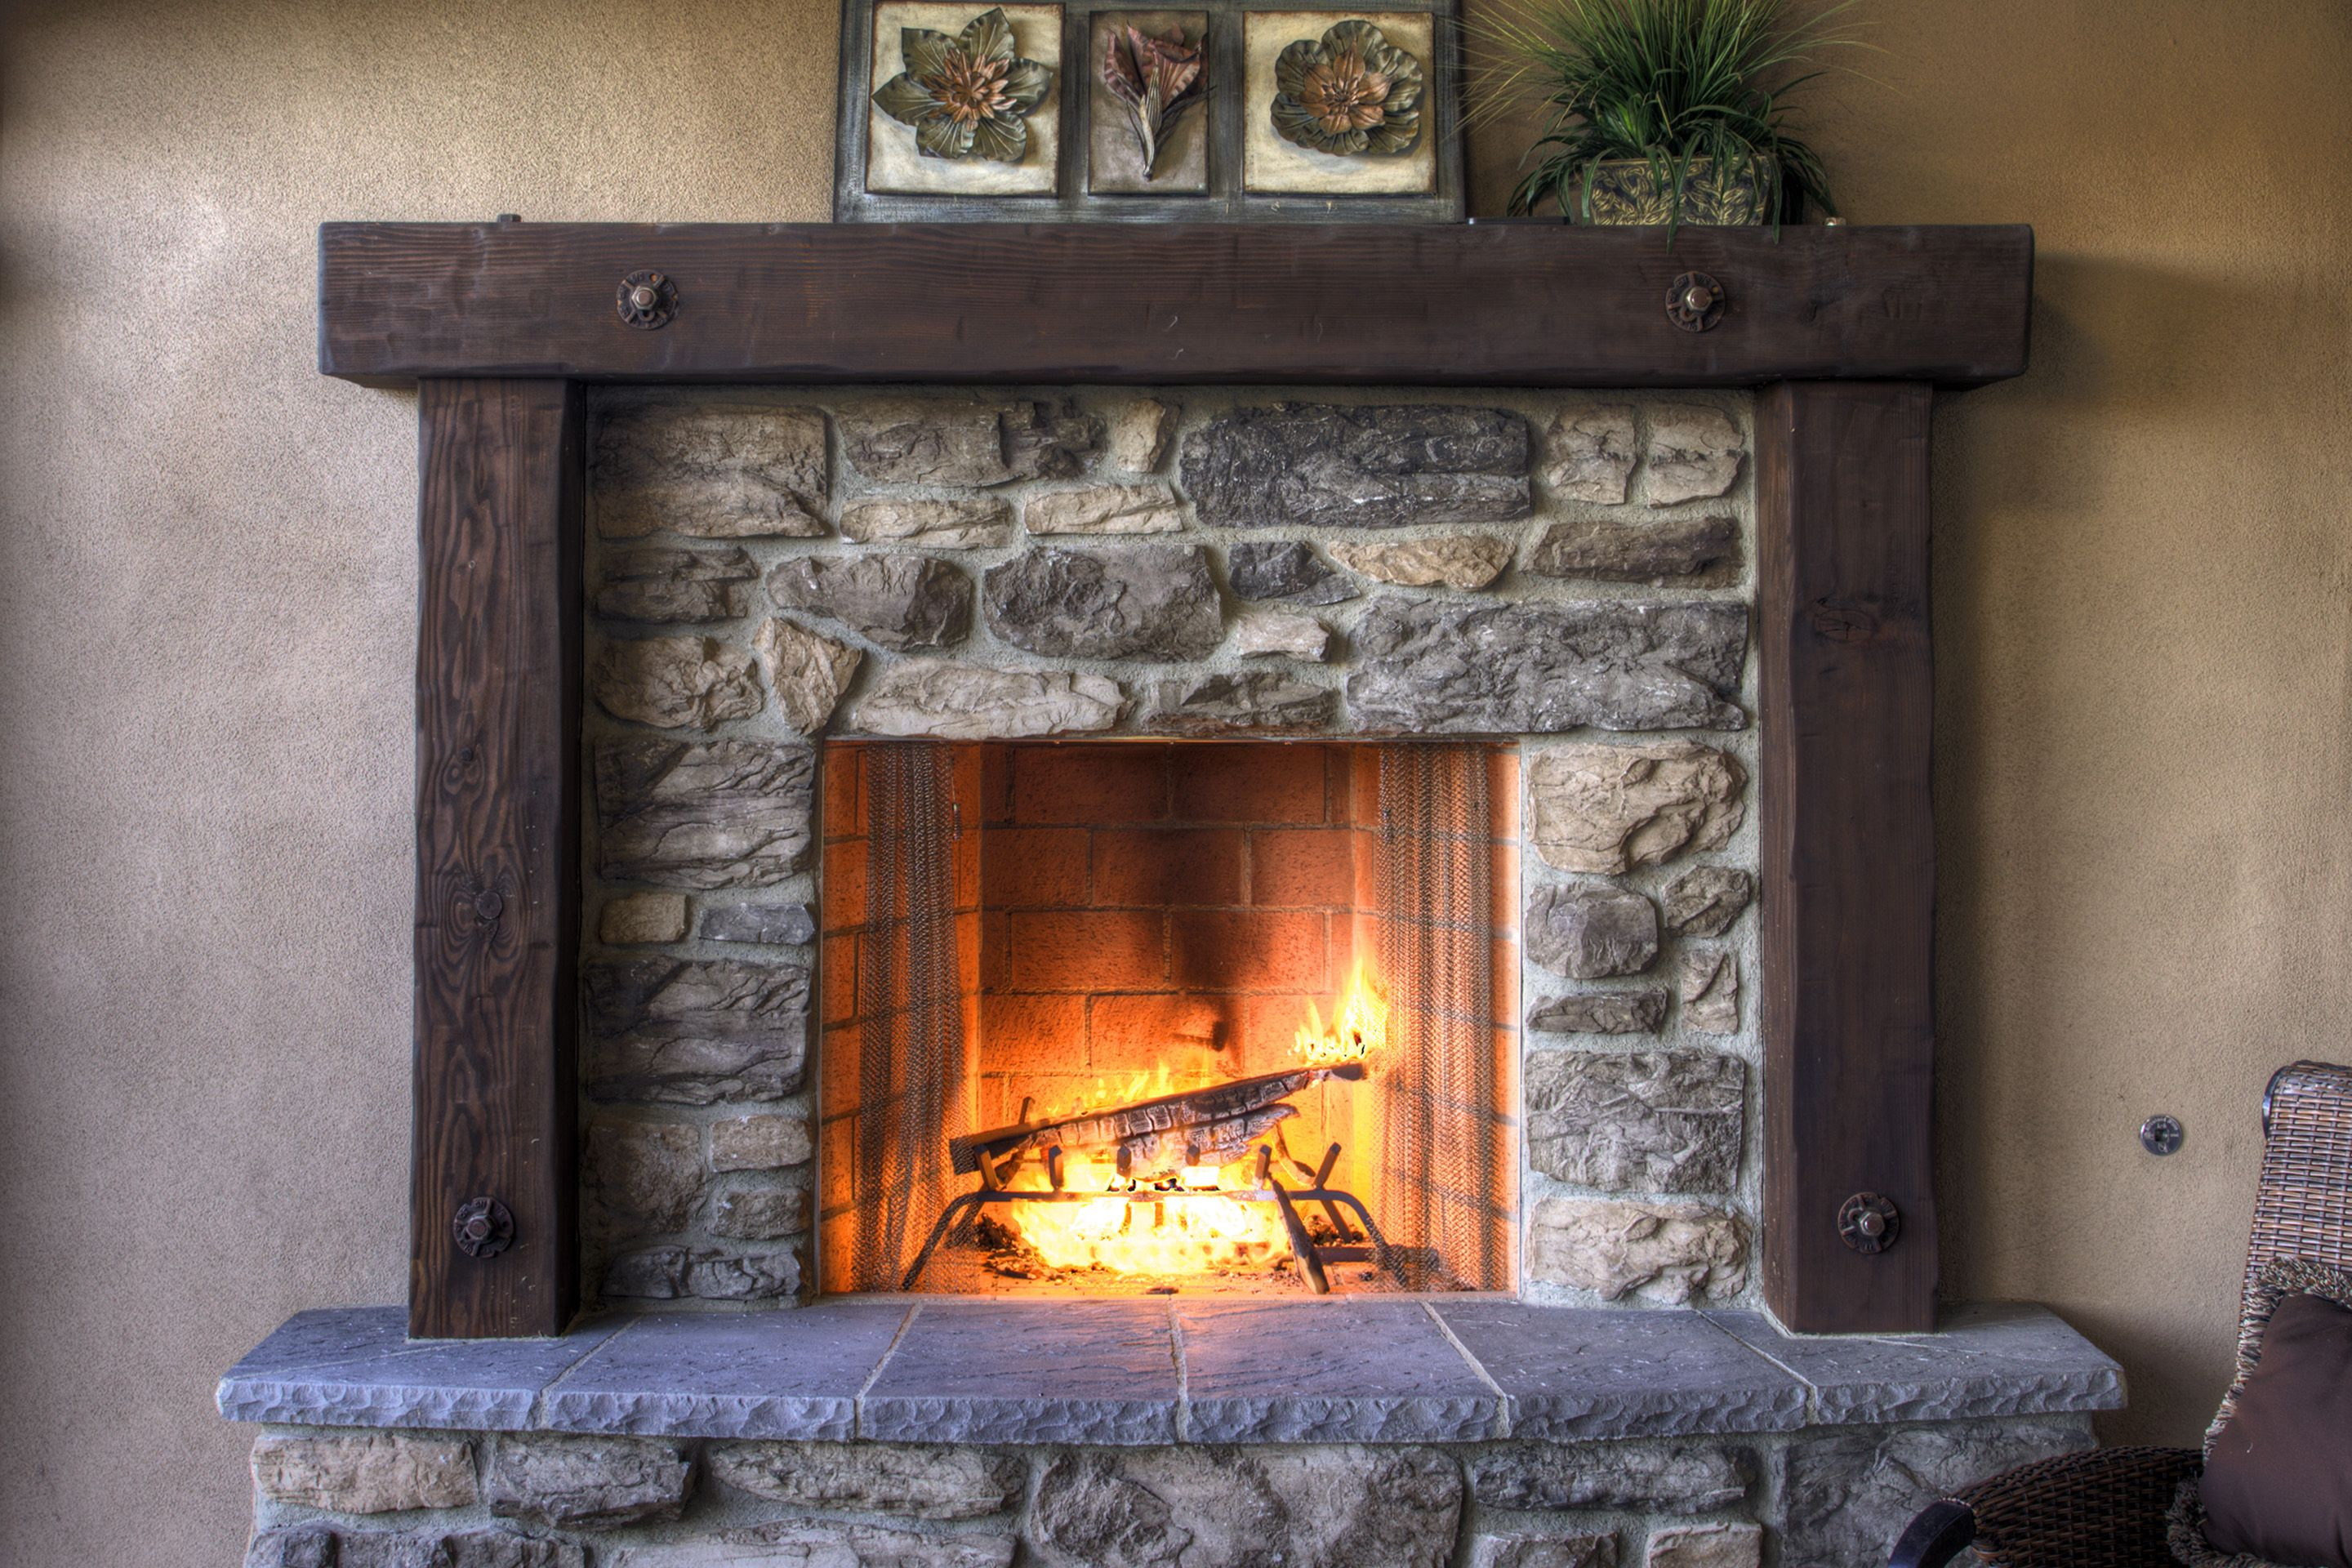 09110124280a2f1b2d431e900446264e Top Result 53 Inspirational Outside Stone Fireplace